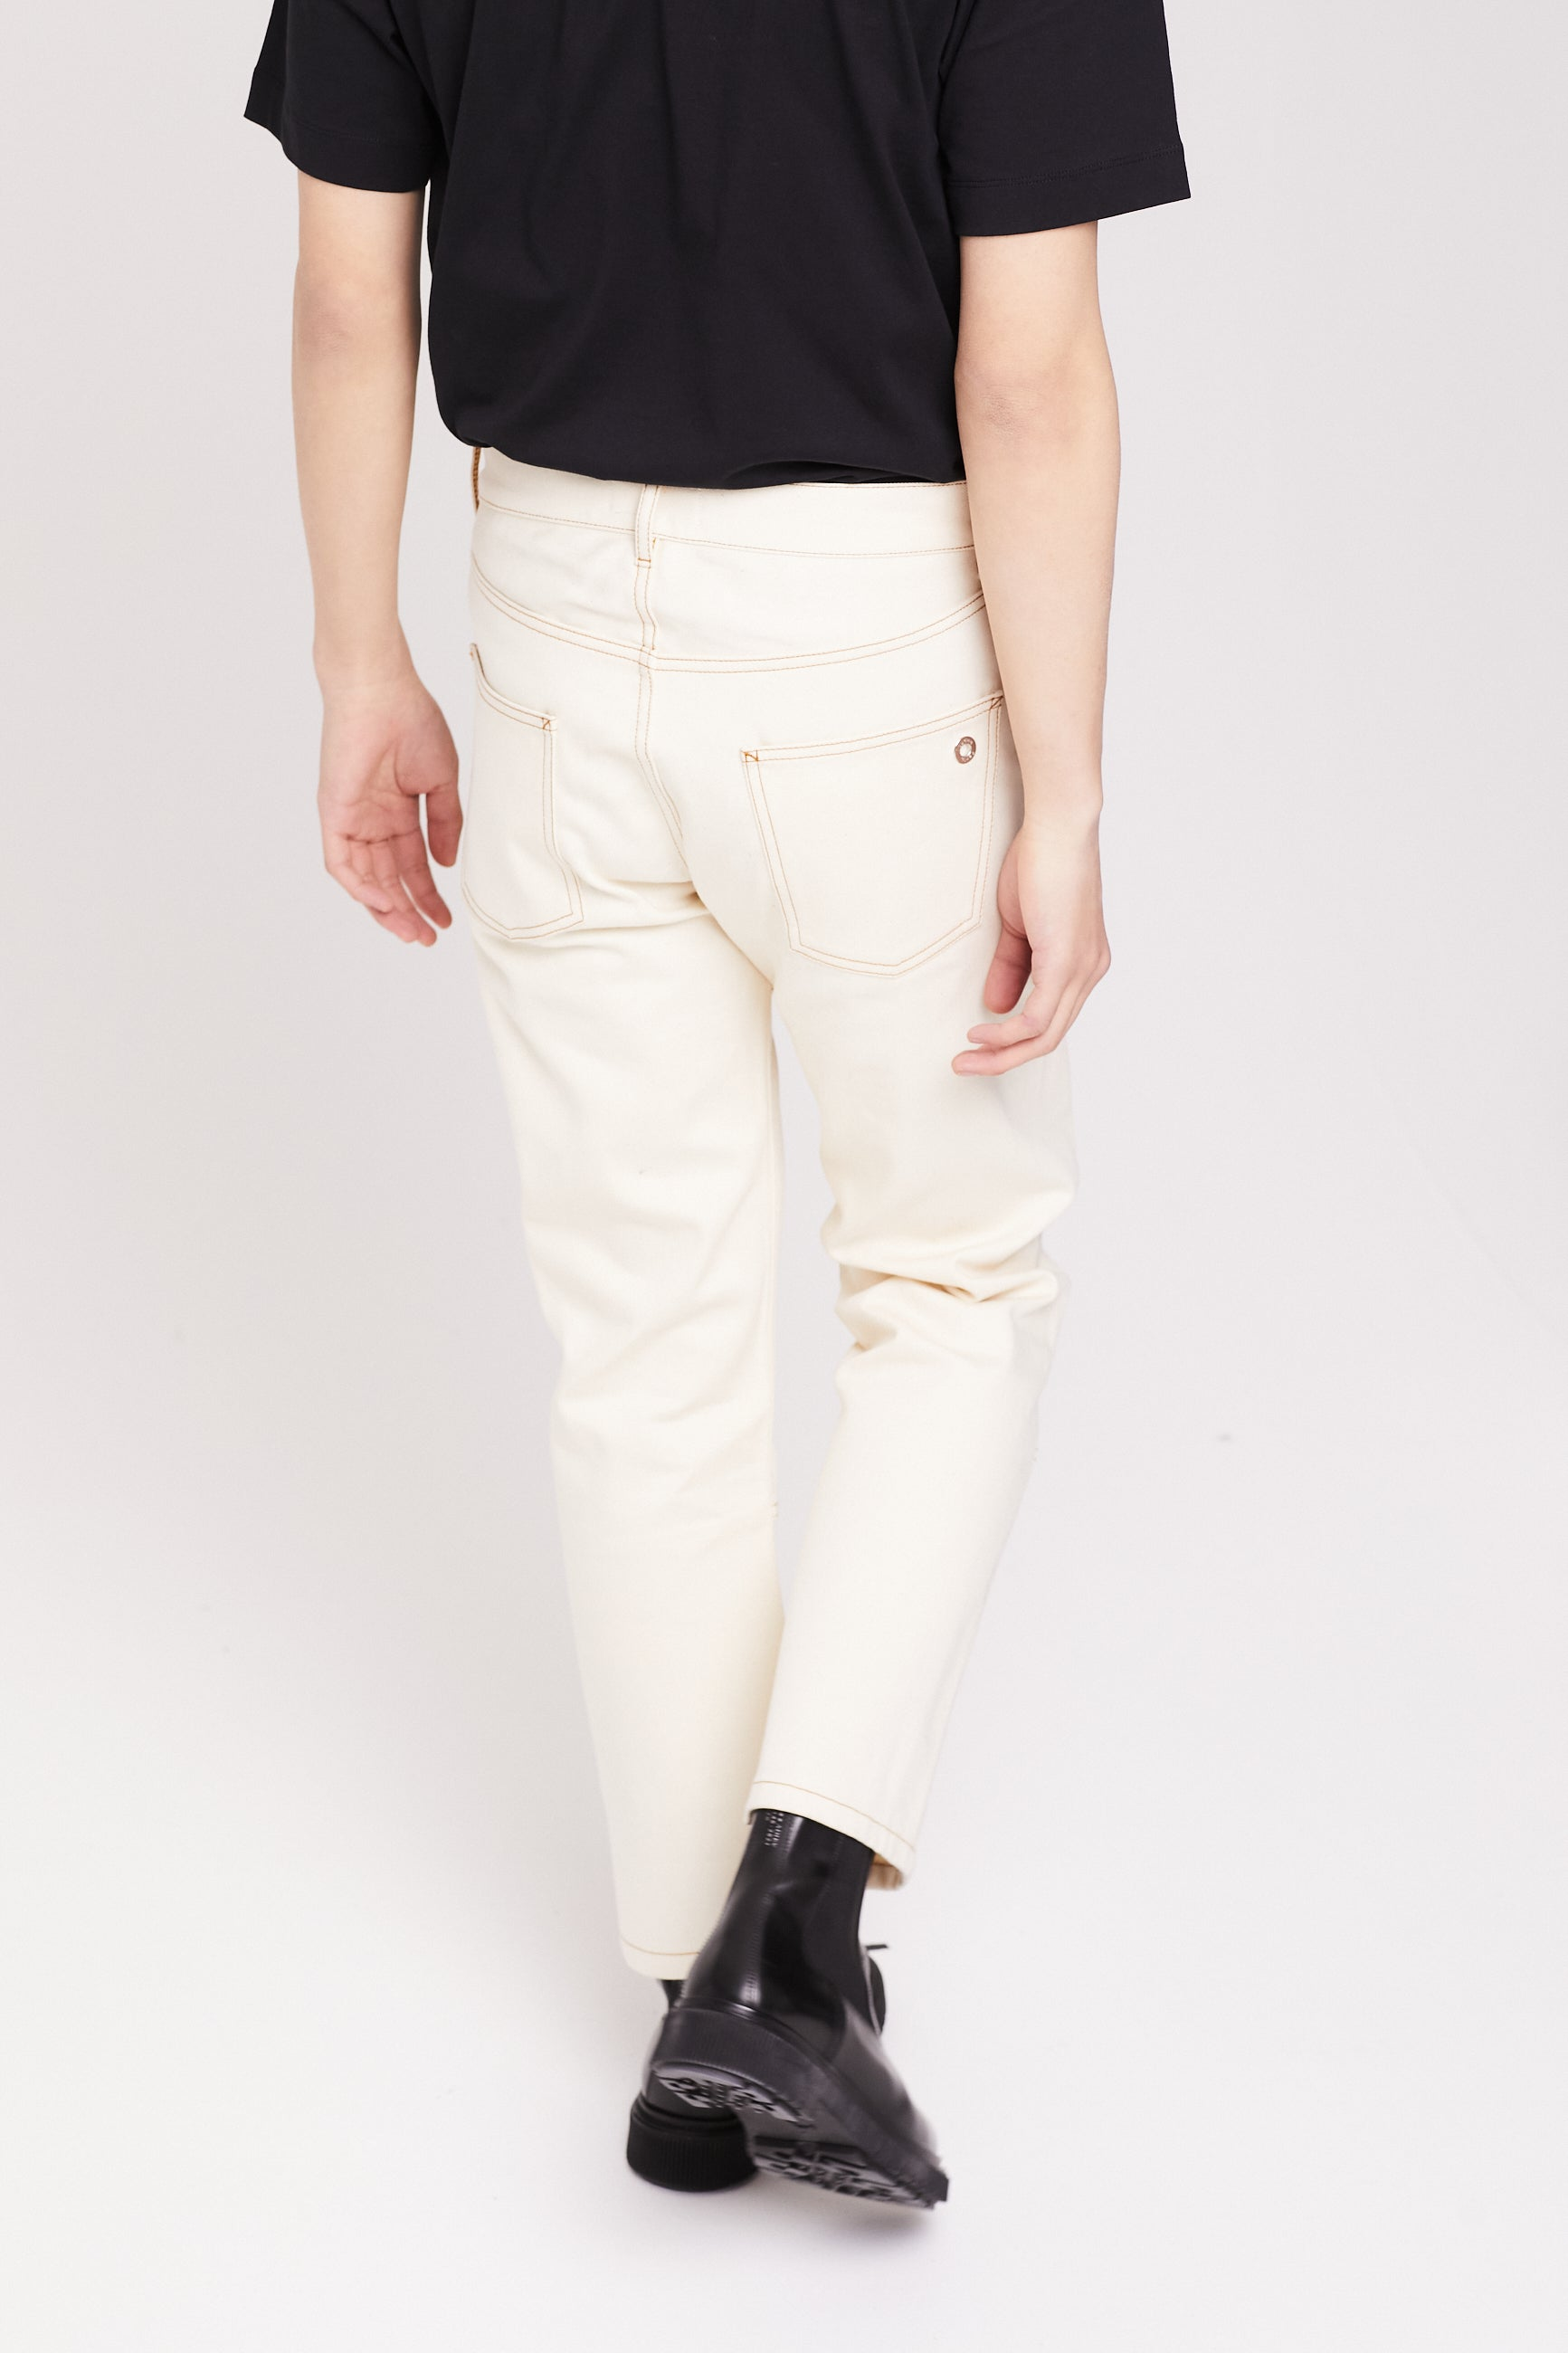 Études Corner Off White Trousers 3